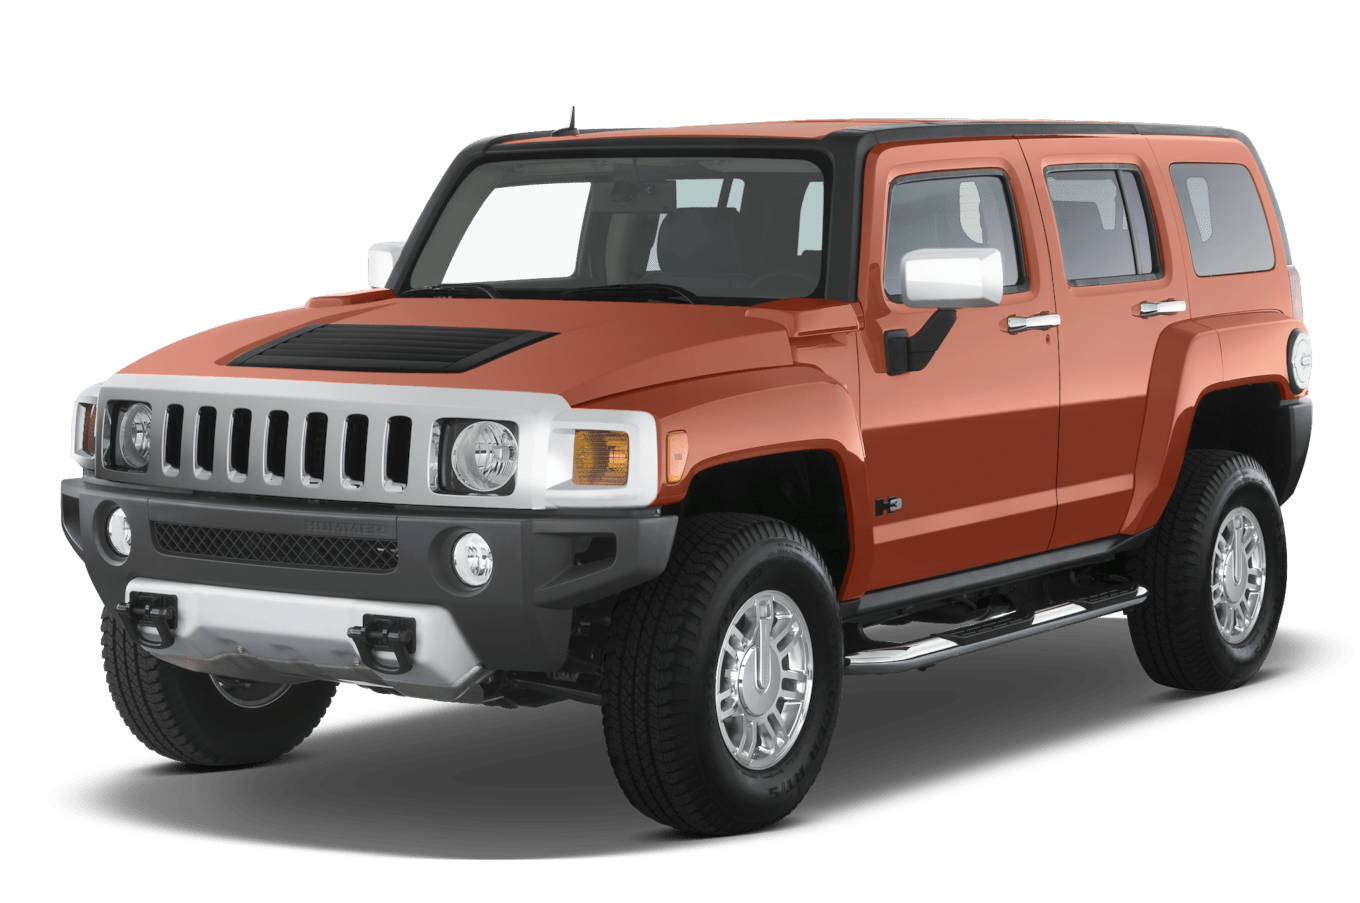 2008 Hummer H3 Reviews and Rating